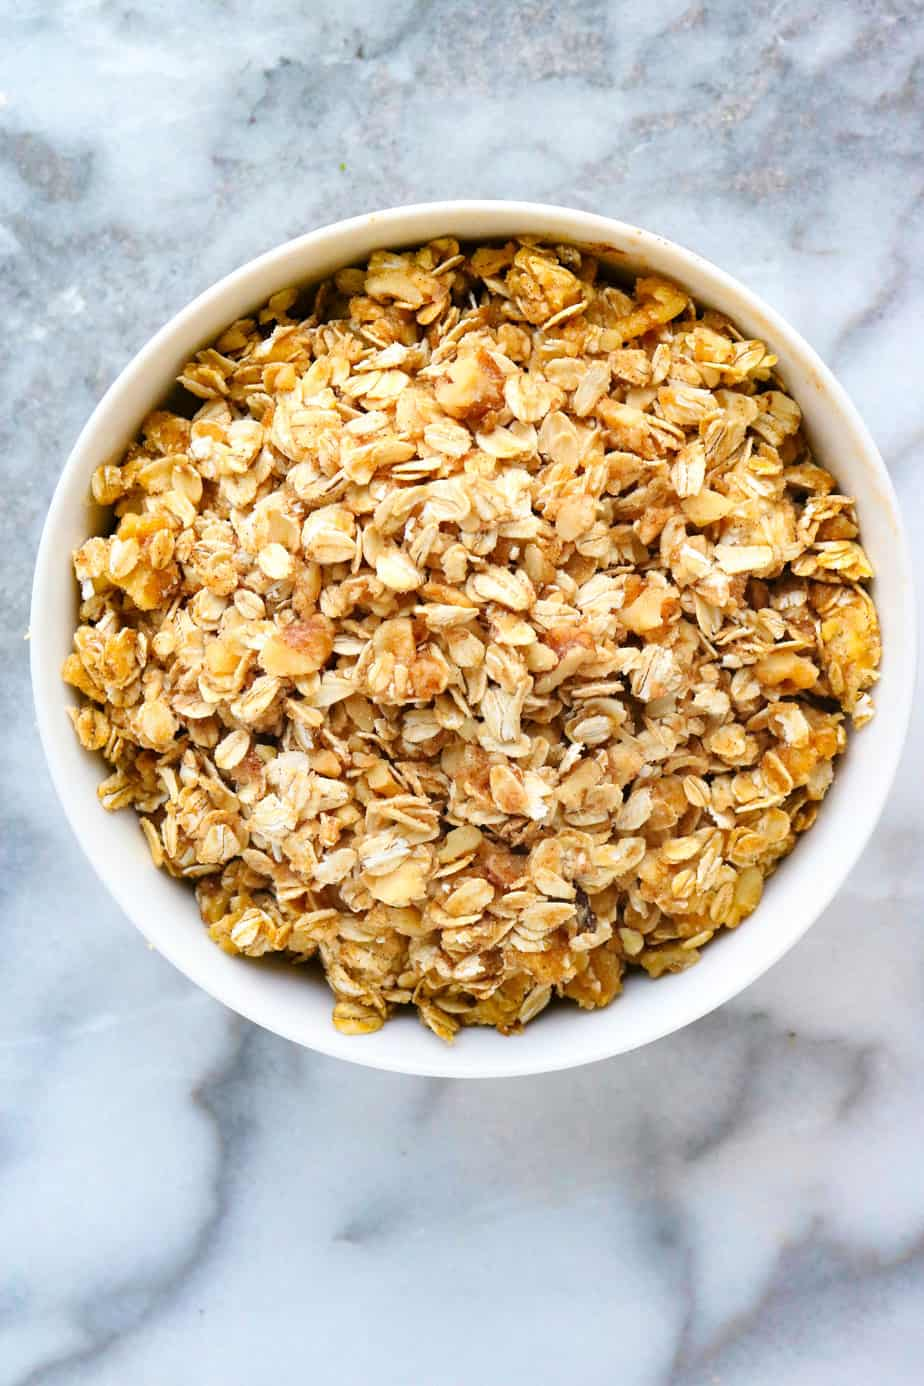 Walnut and oats crumble mix in a white bowl